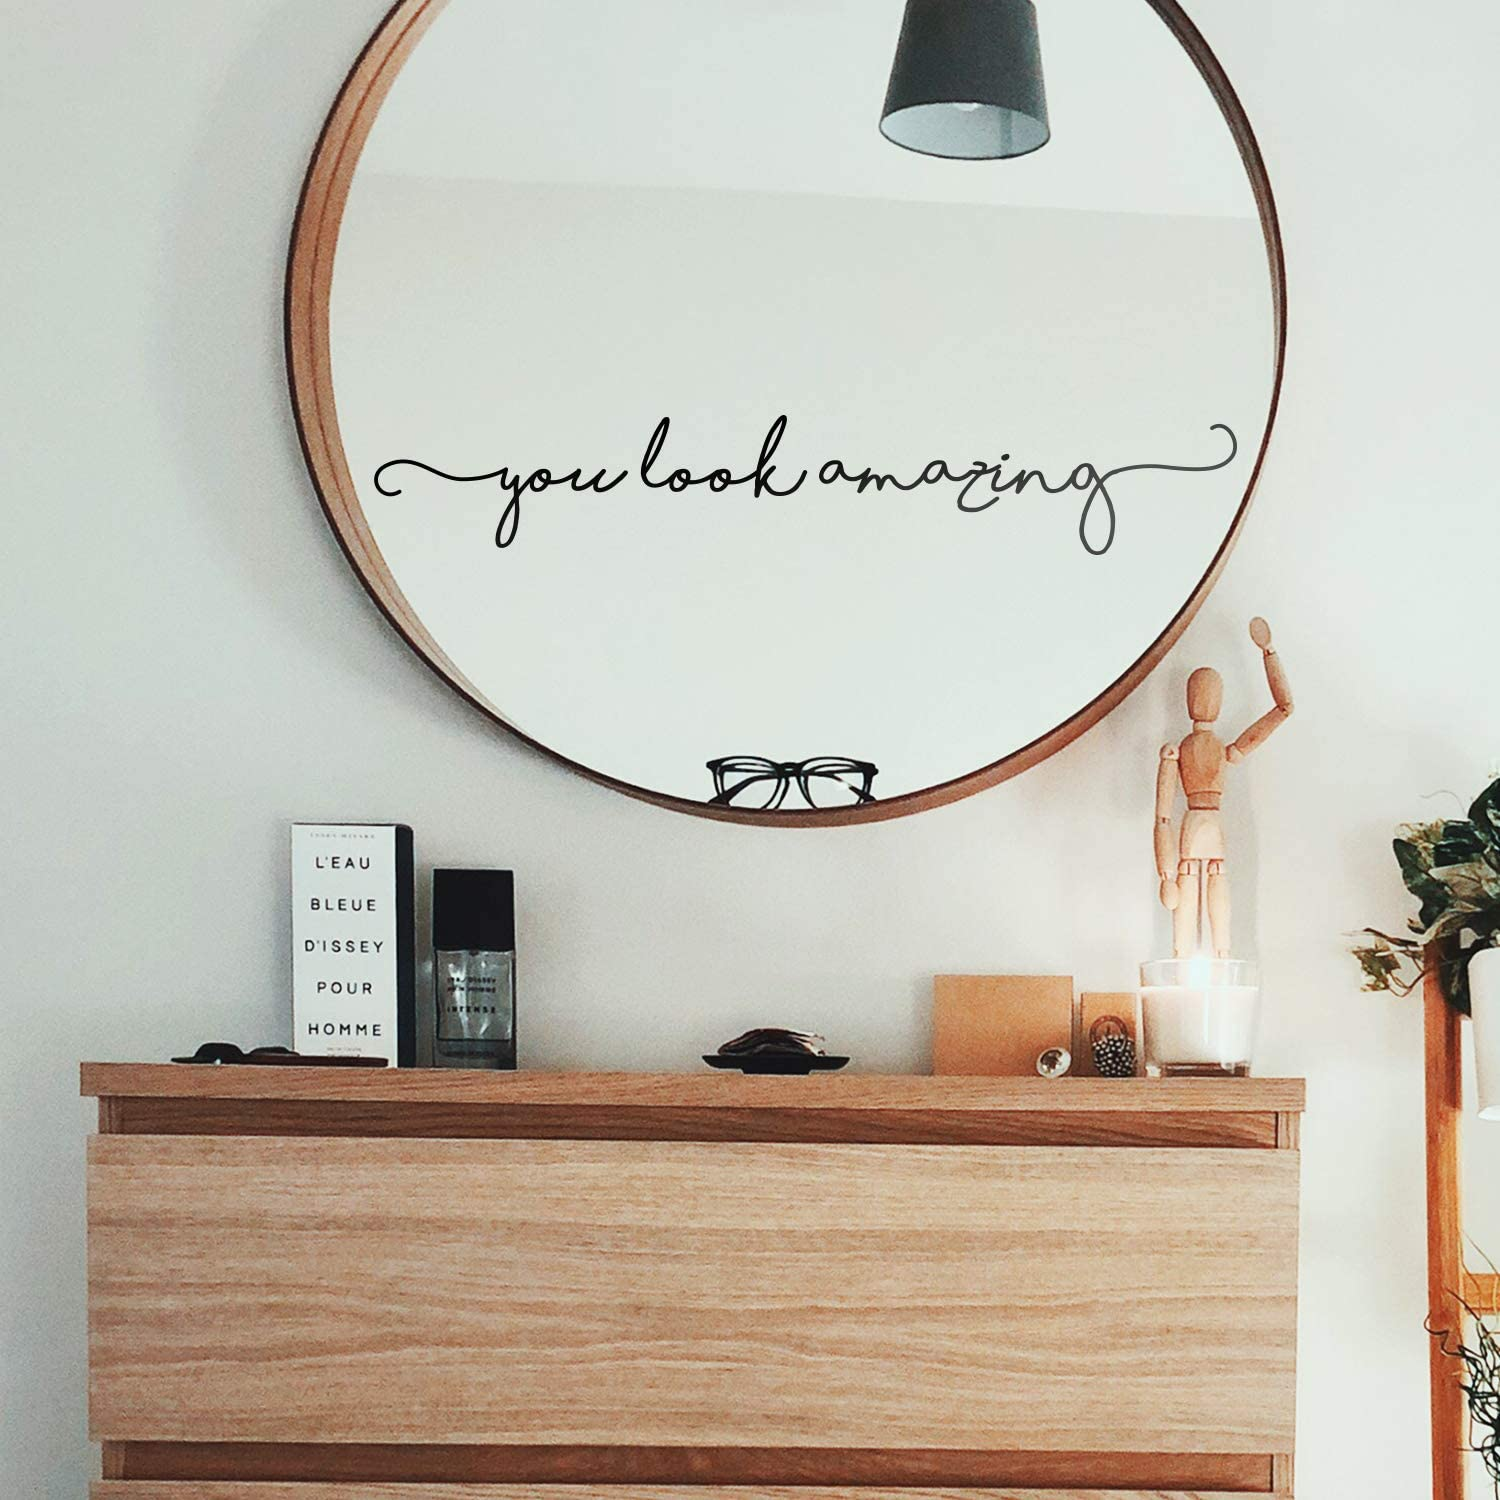 "Vinyl Wall Art Decal - You Look Amazing - 4"" x 25"" - Cute Chic Cursive Home Apartment Bedroom Living Room Decor - Modern Trendy Femme Office Workplace Mirror Window Door Quote"